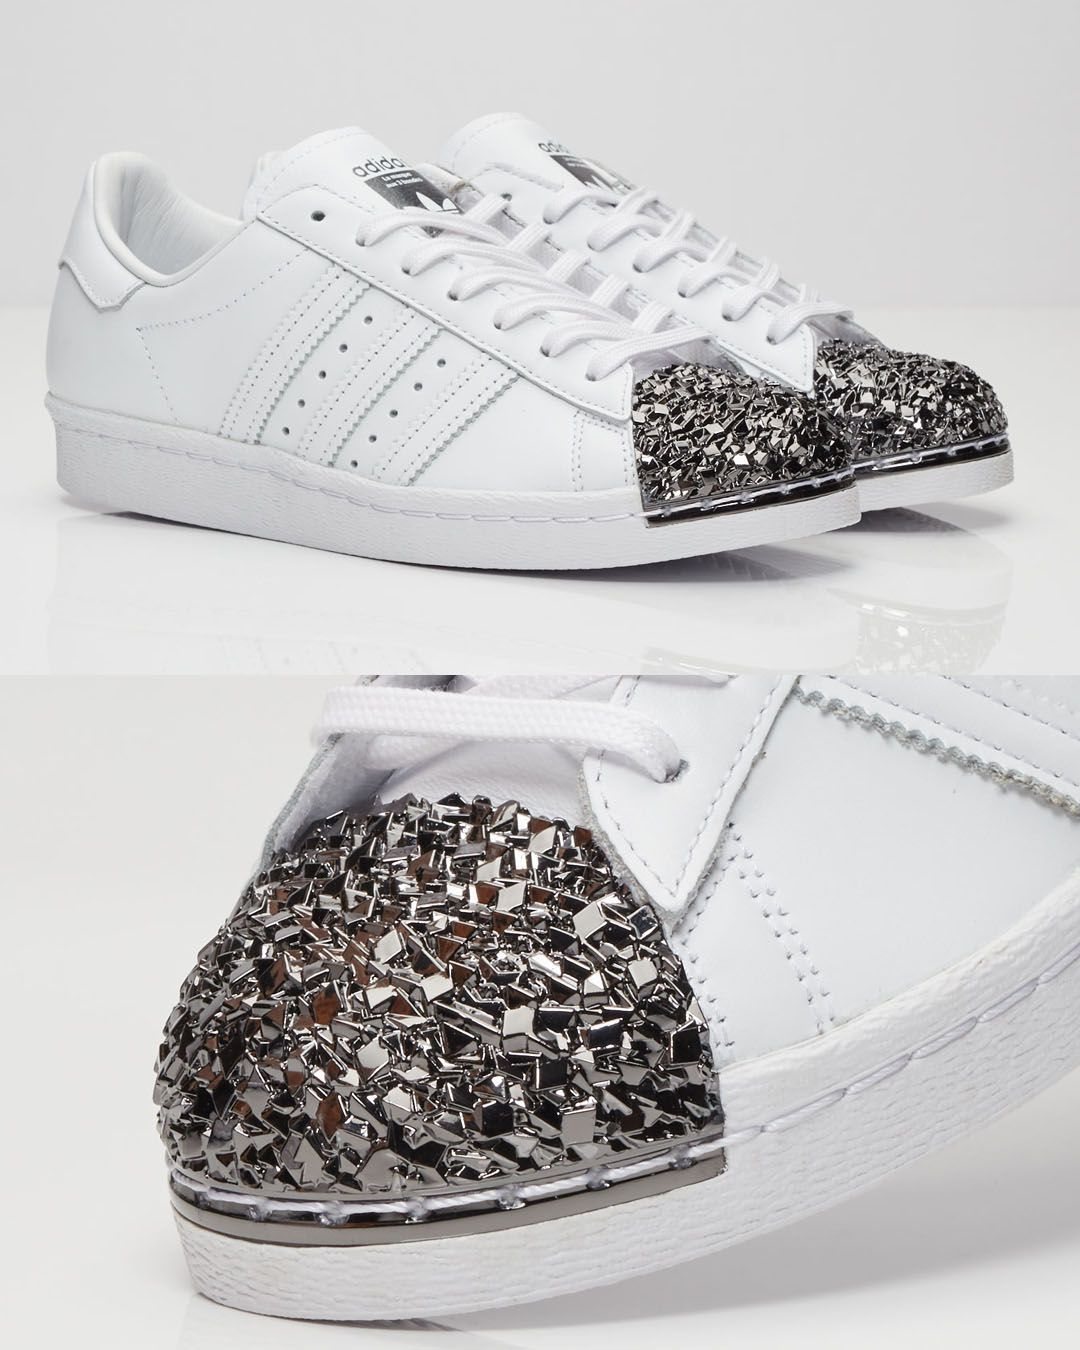 new concept 673d5 b140e adiads superstar metal toe S76532 WOMENS ATHLETIC FASHION SNEAKERS  amzn.to 2kR9jl3